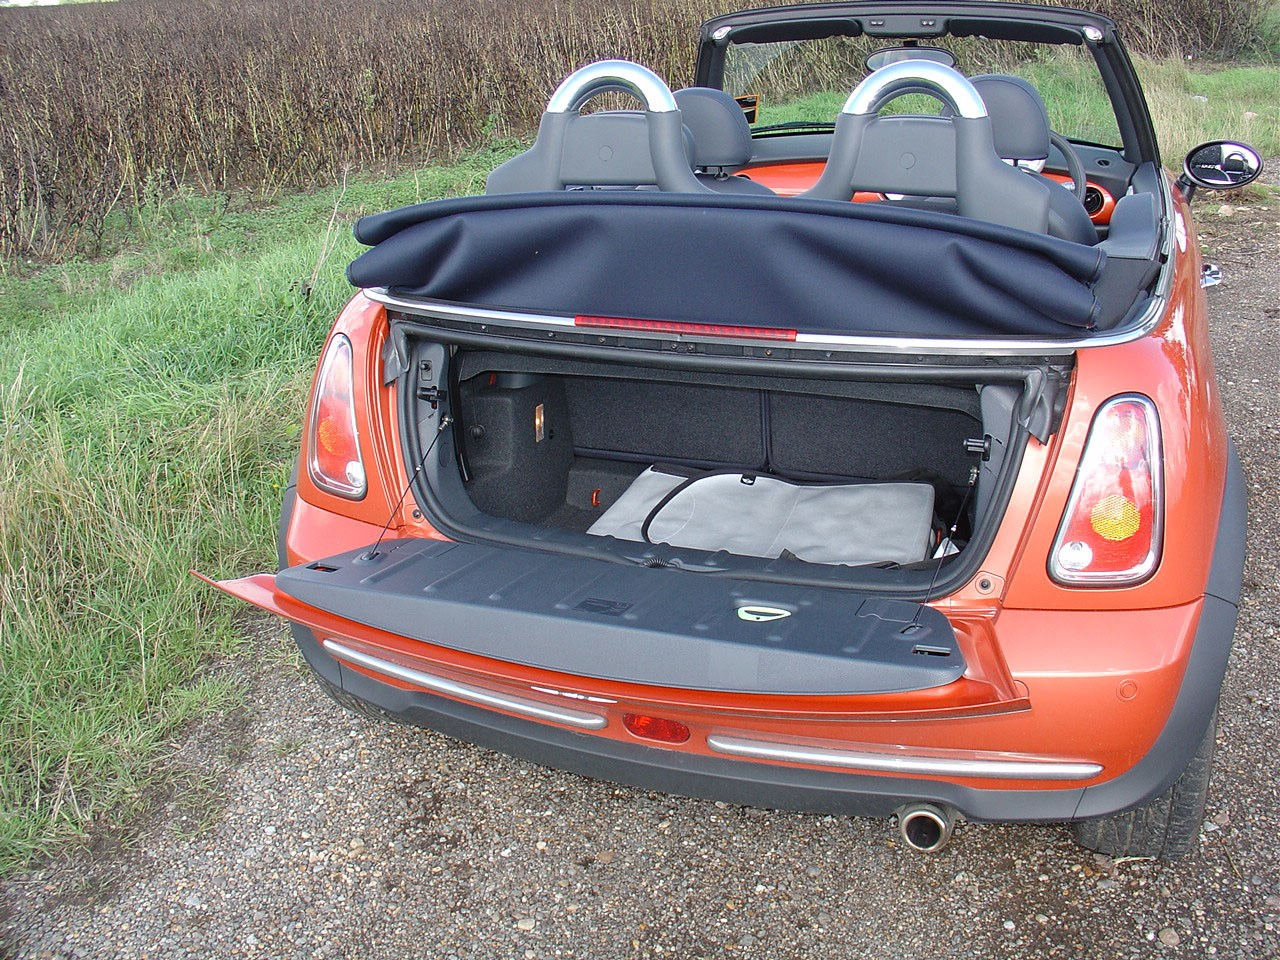 View All Images Of The Mini Convertible 04 08